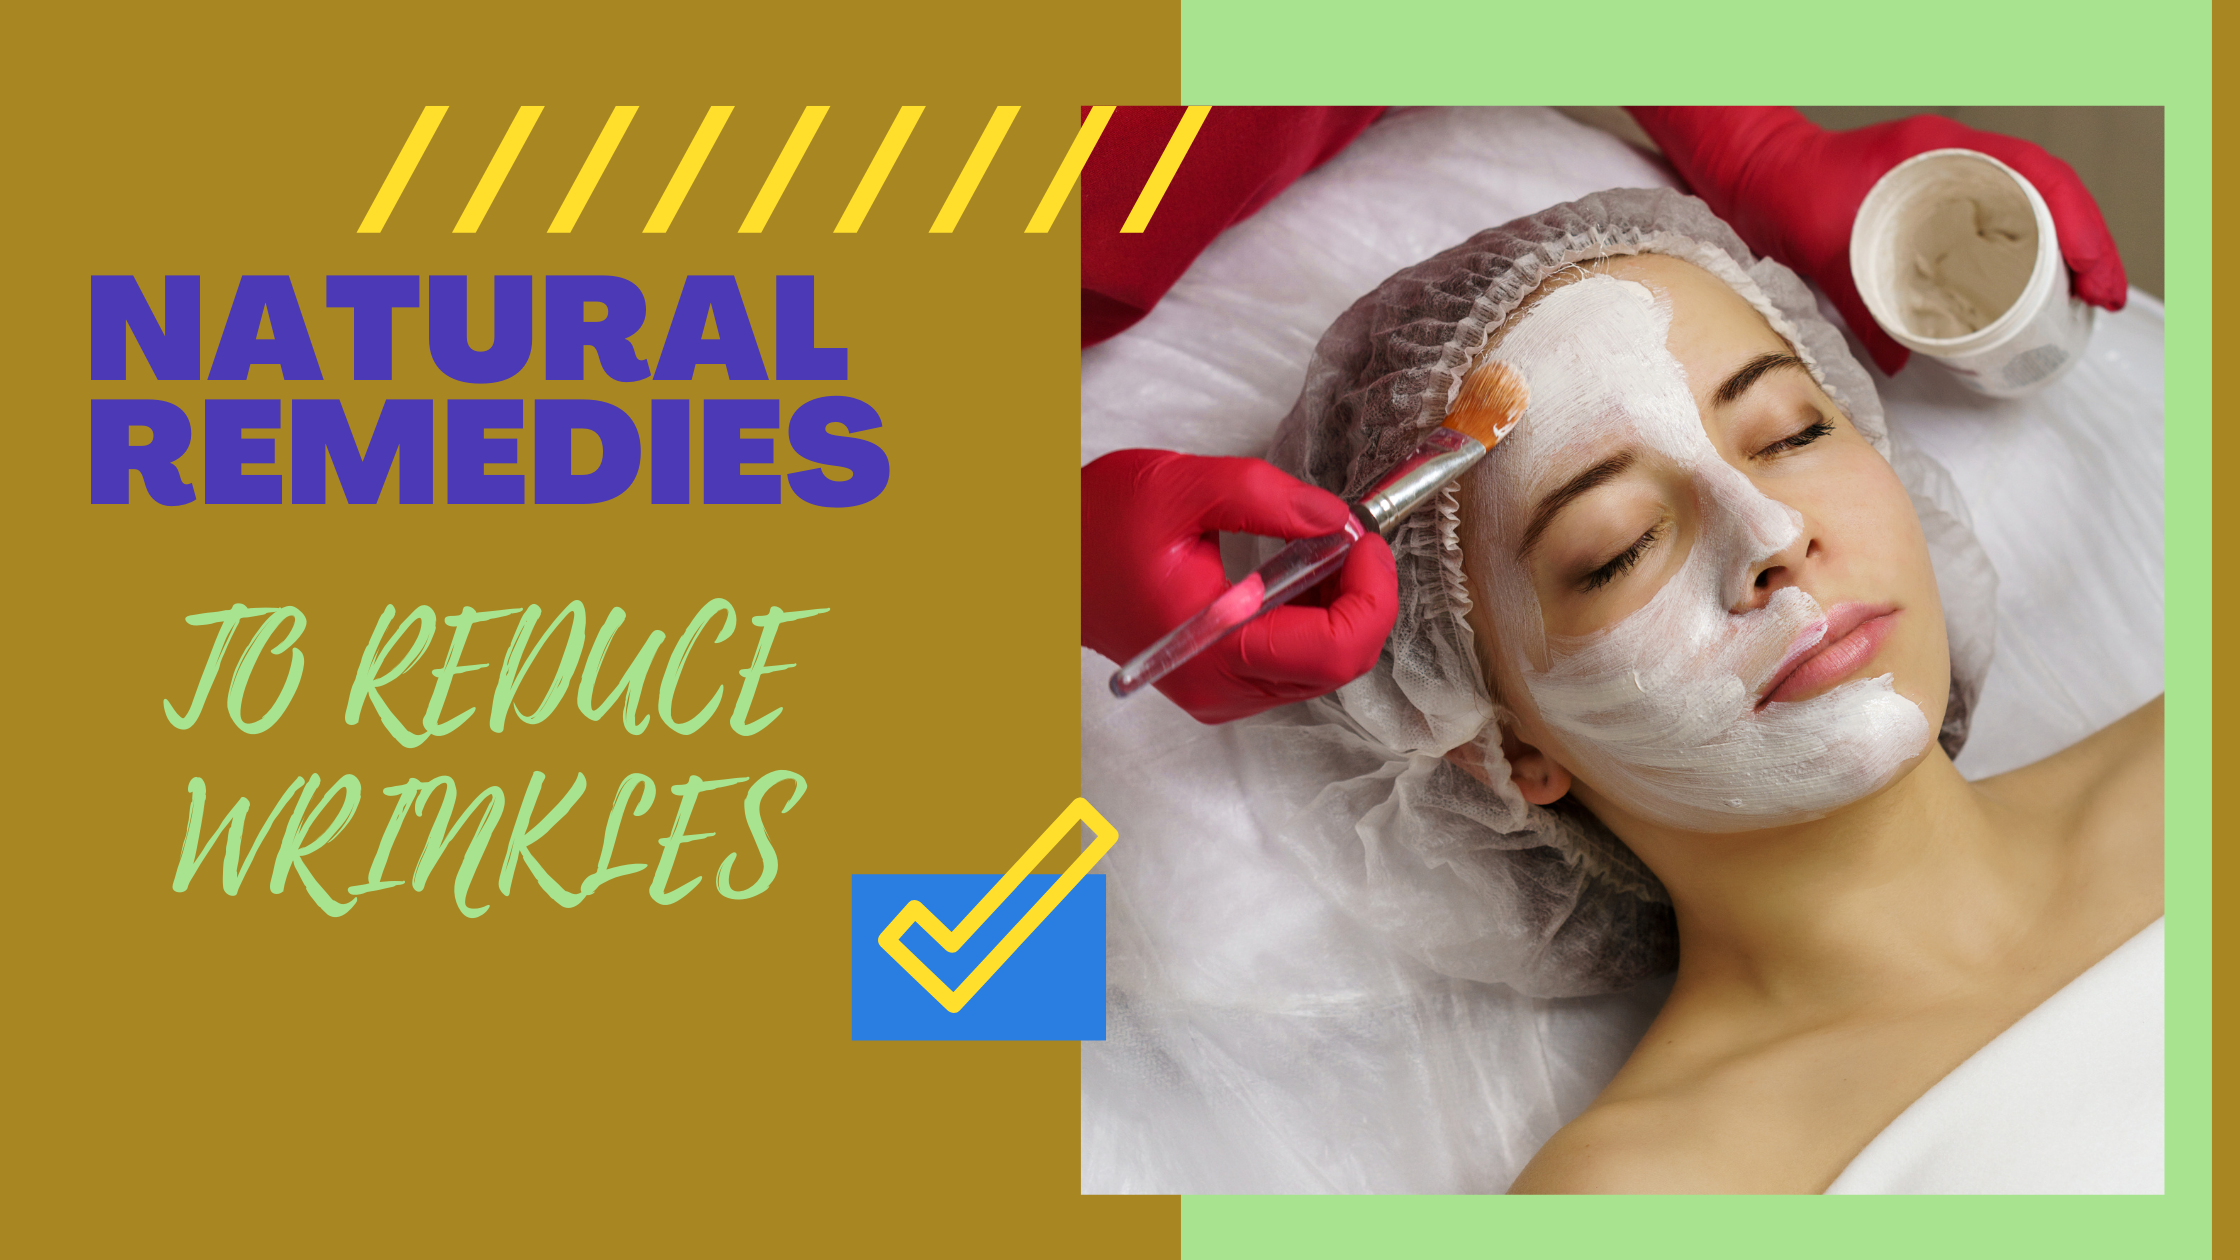 NATURAL REMEDIES TO REDUCE WRINKLES